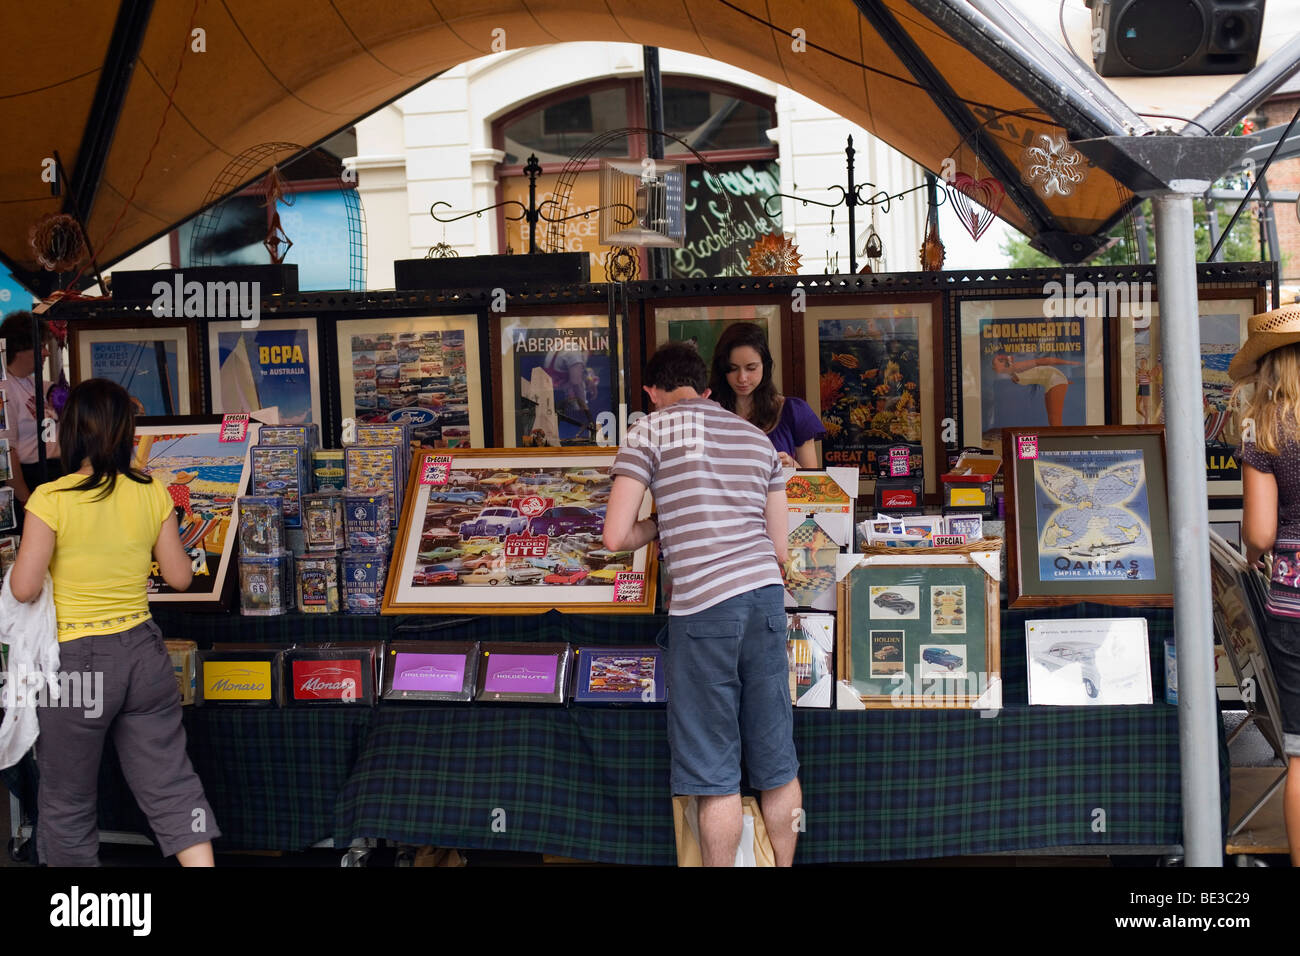 Shoppers browse the stalls at the Rocks Market. Sydney, New South Wales, AUSTRALIA - Stock Image